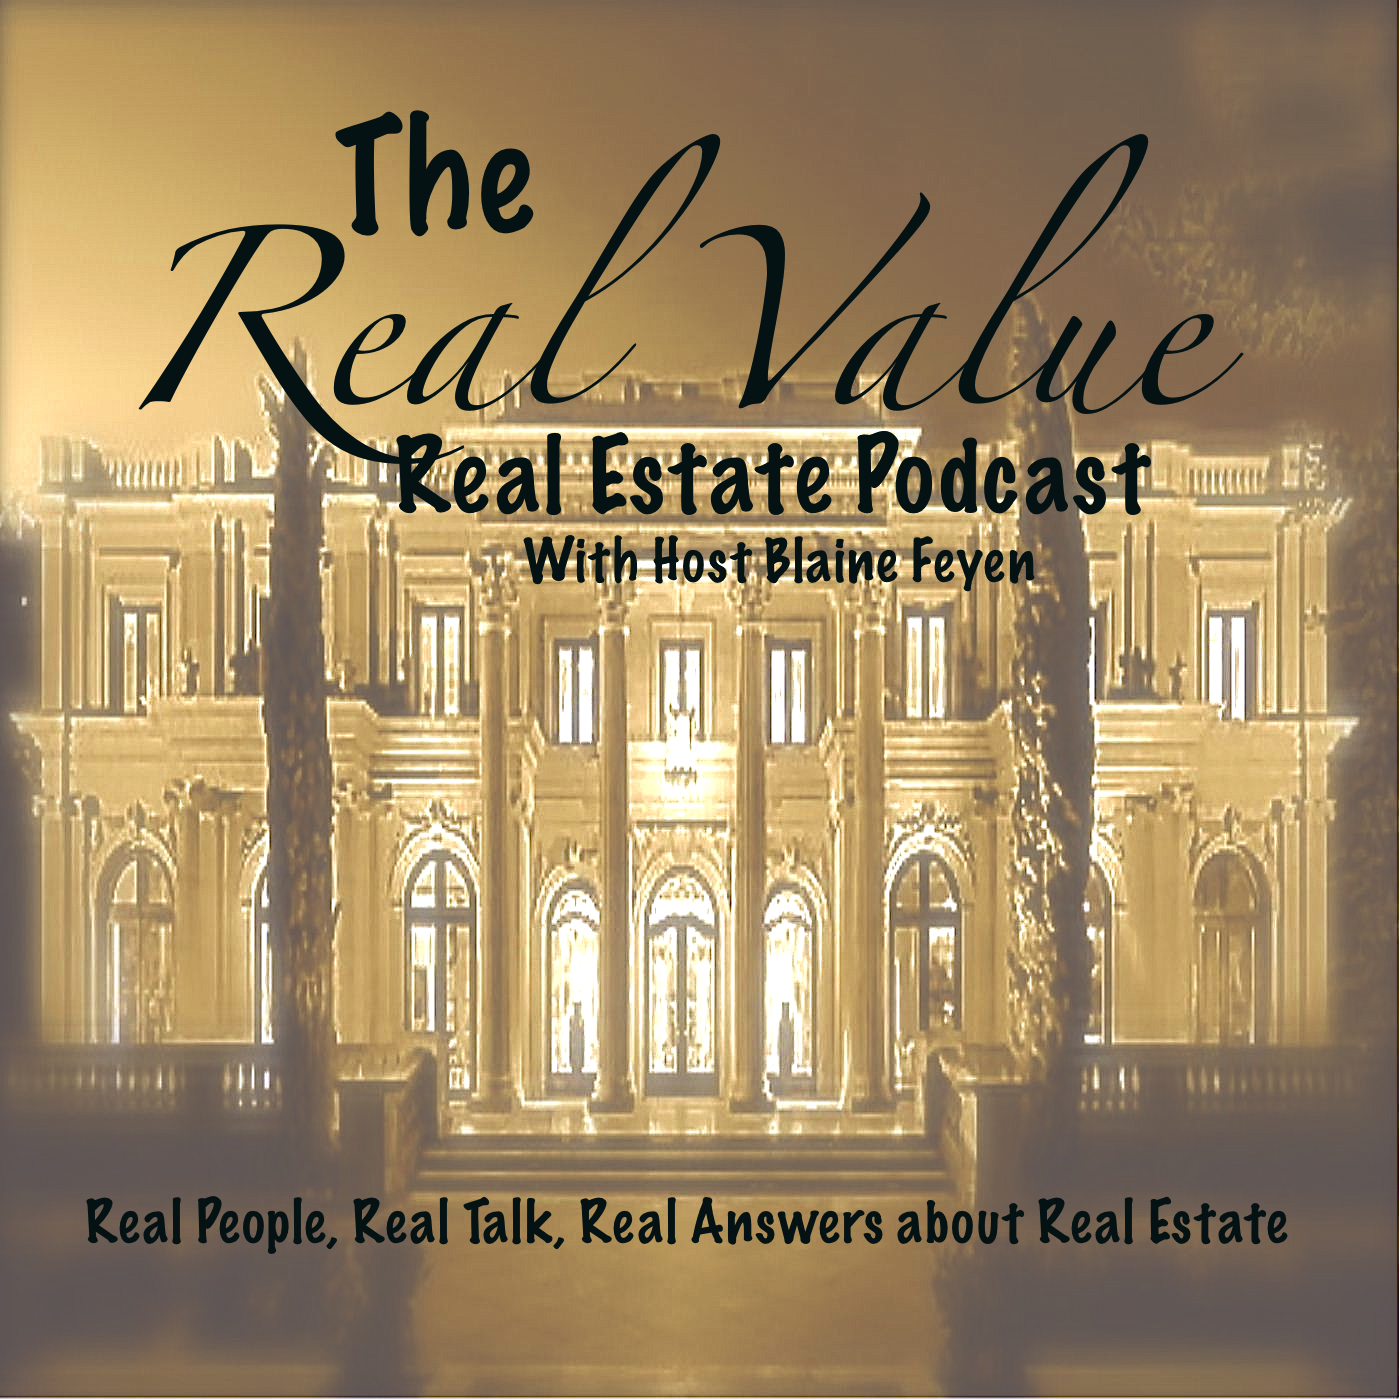 Real Value PodCast!